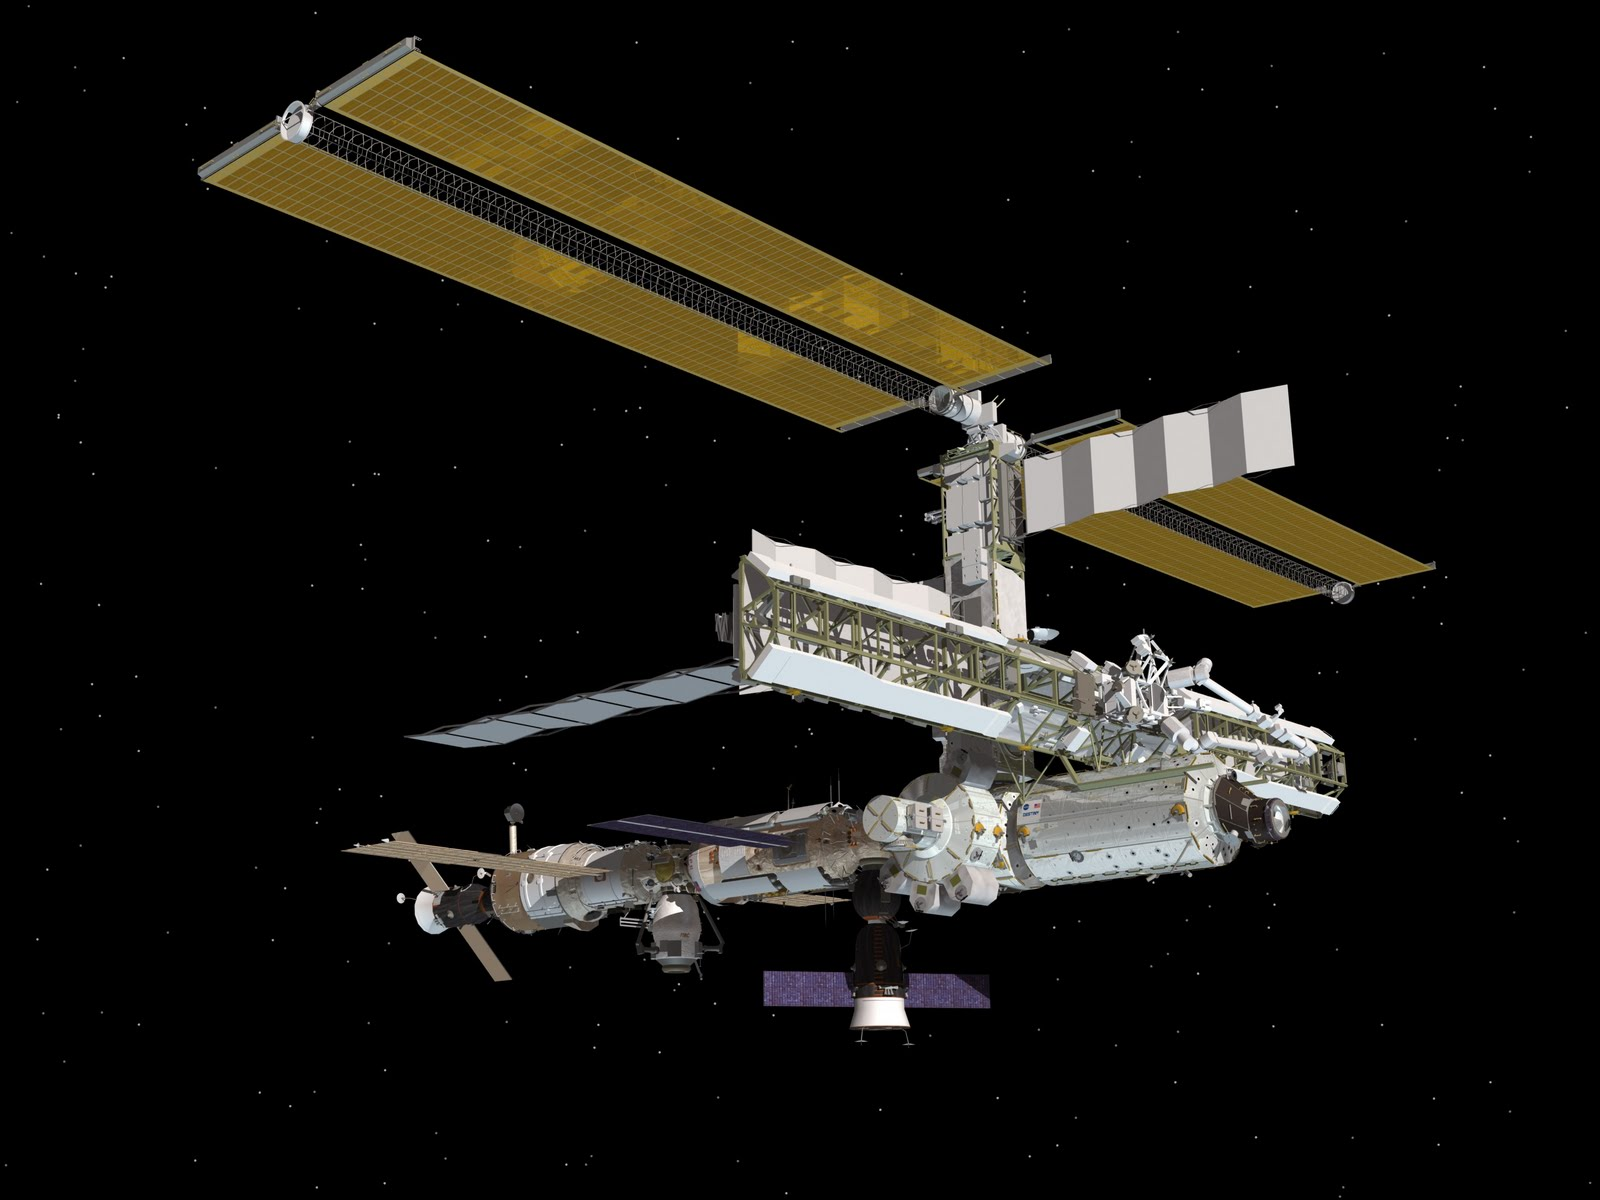 free wallpapers international space station wallpaper